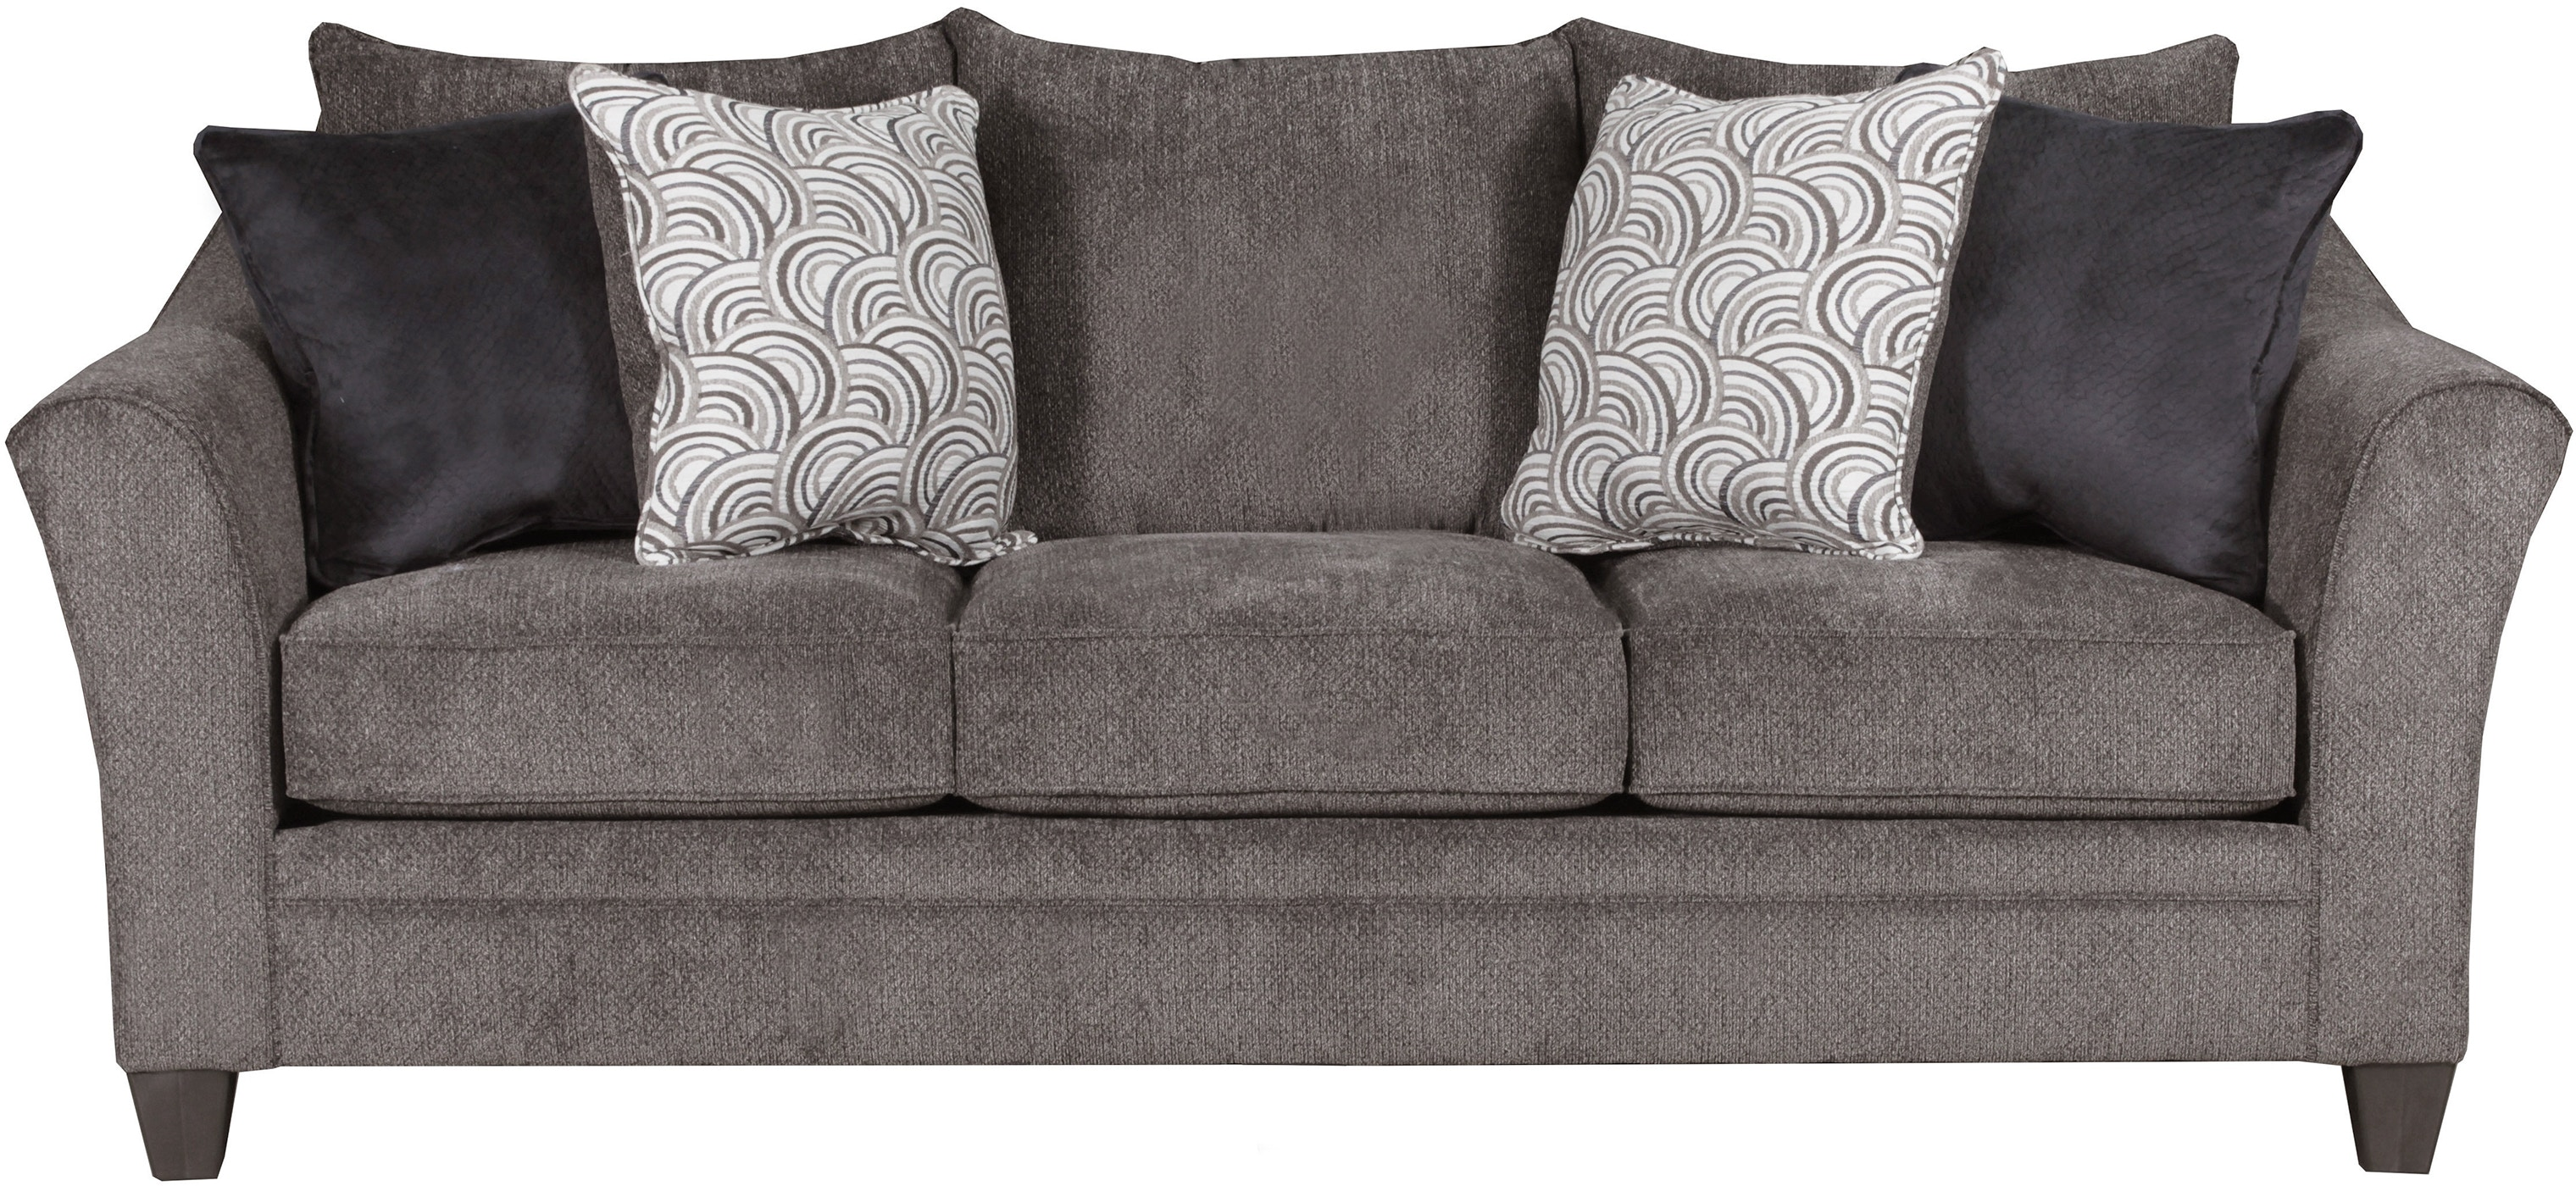 Albany Sofas Albany 8645 Traditional Stationary Sofa With